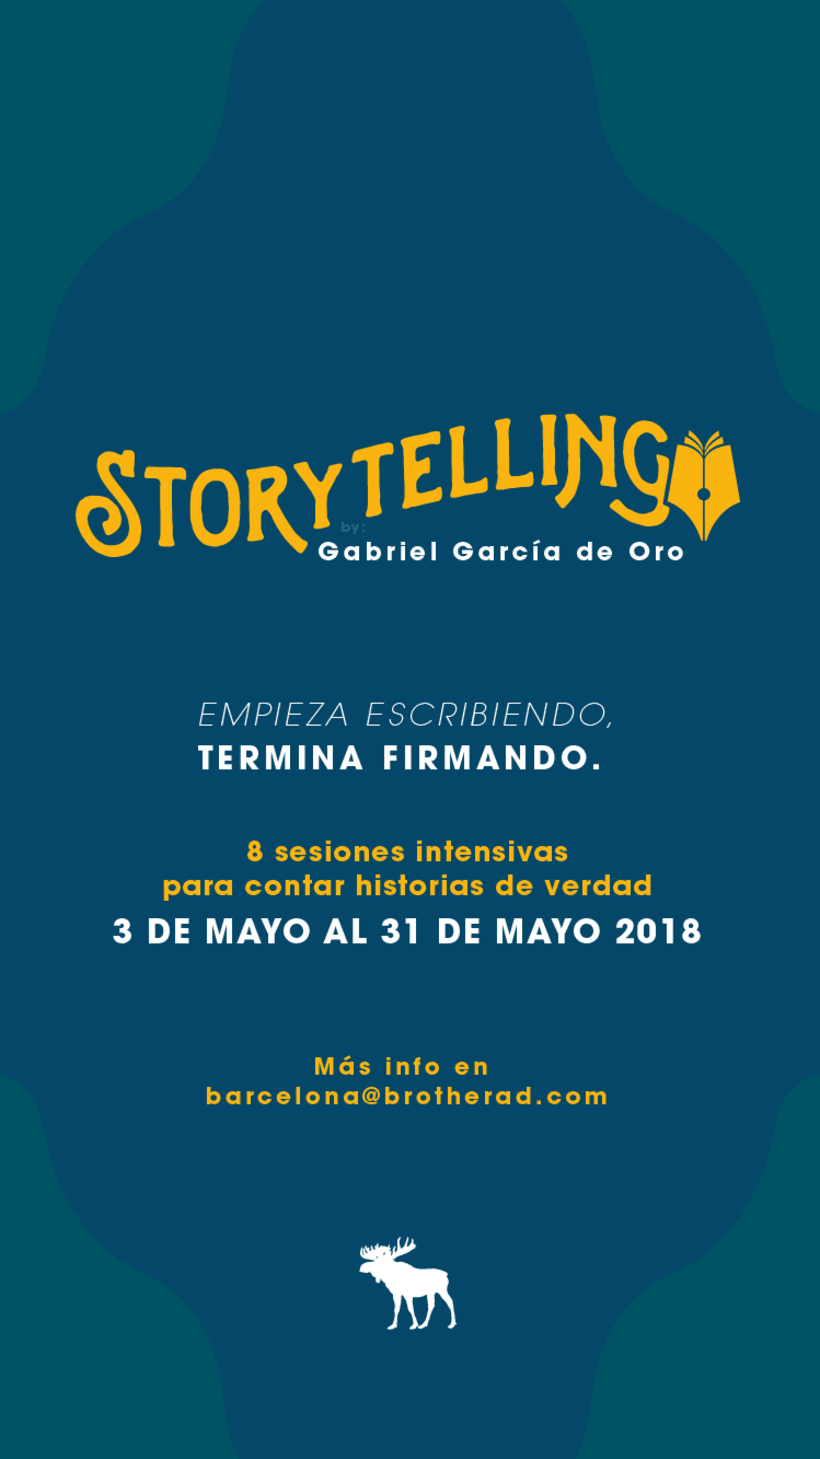 Storytelling by Brother Barcelona 1